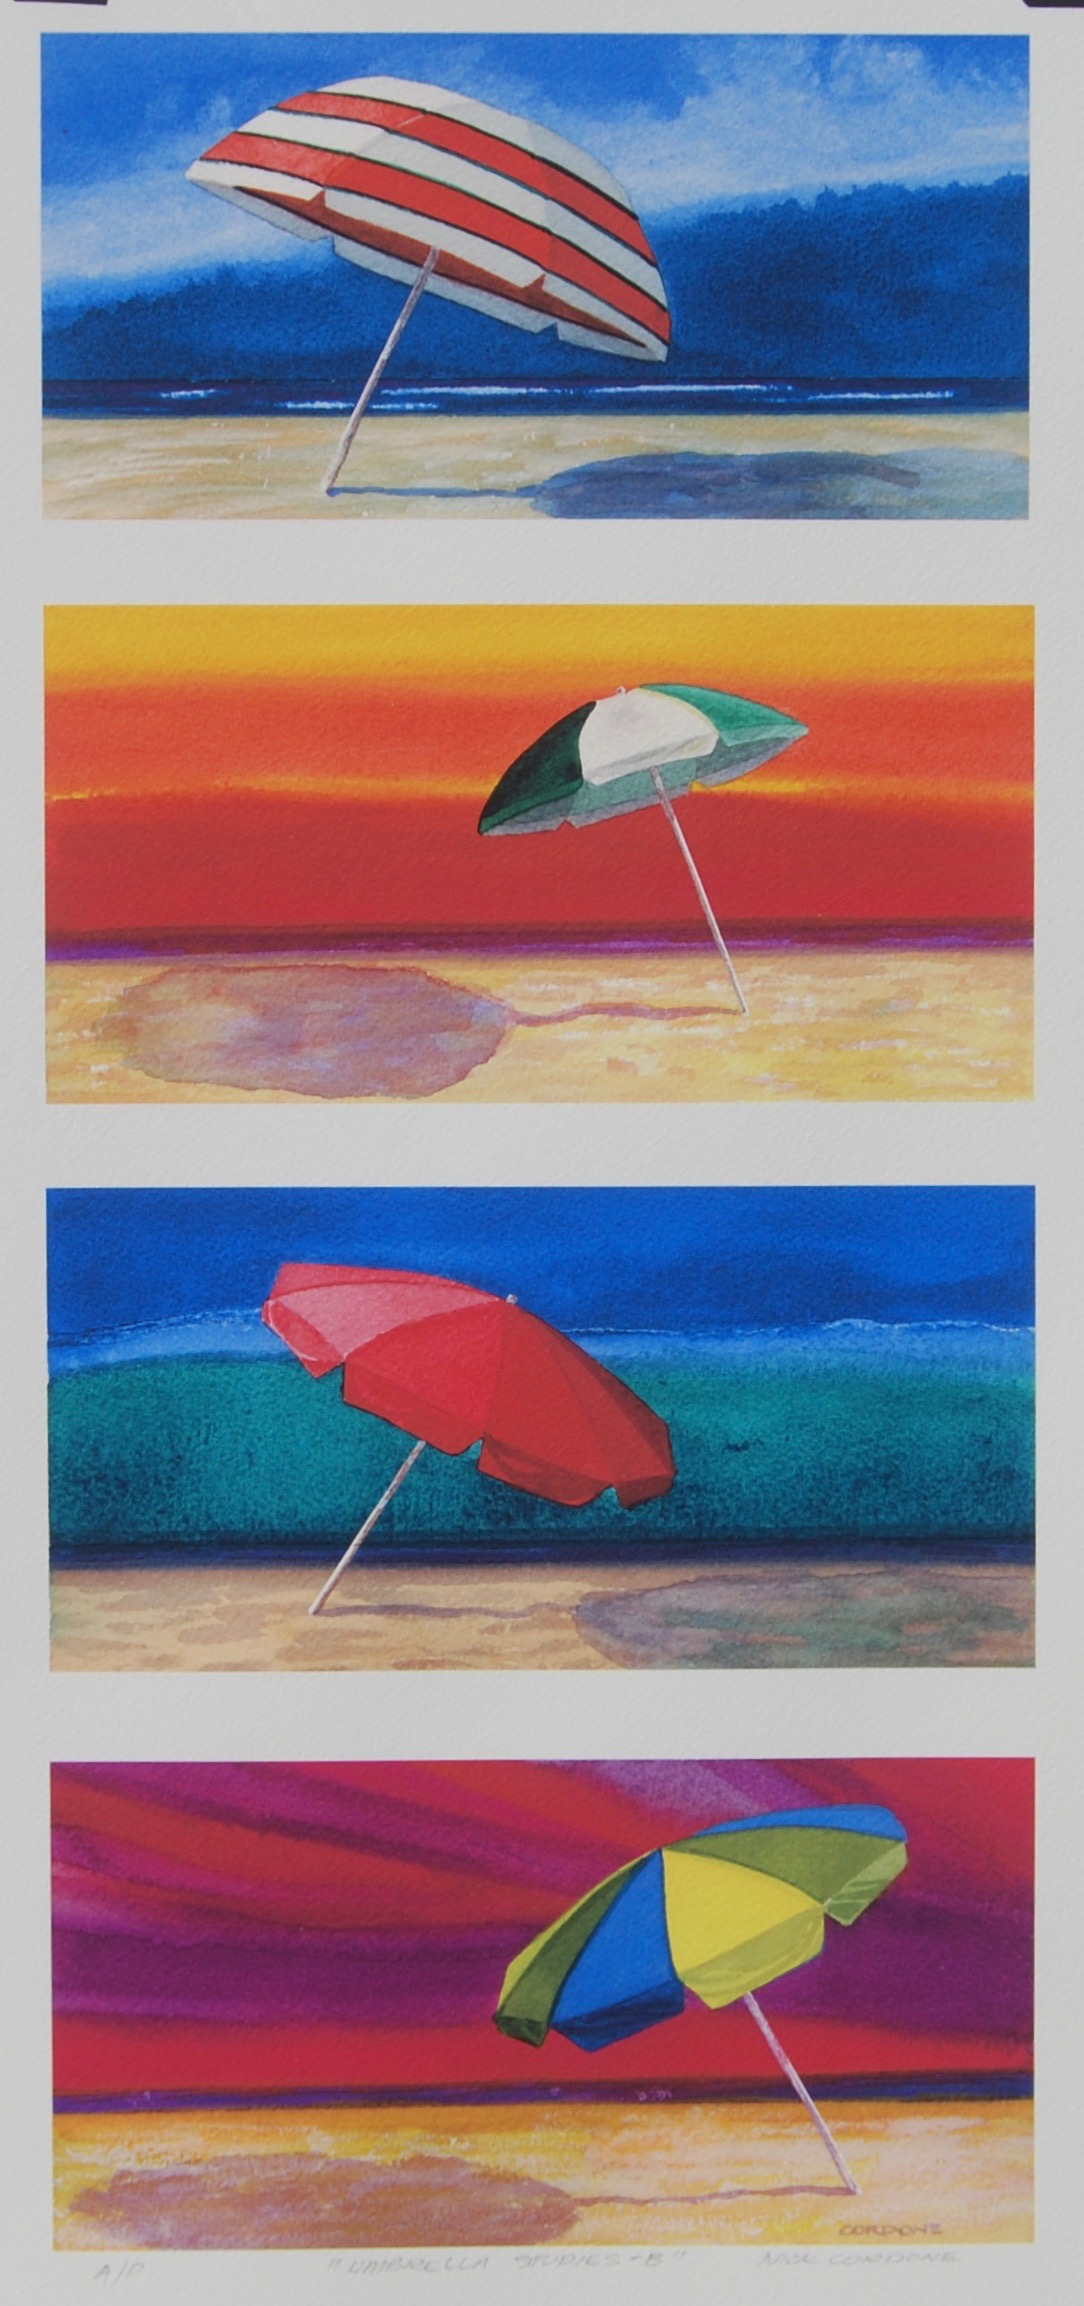 Umbrella Studies #1 - 12